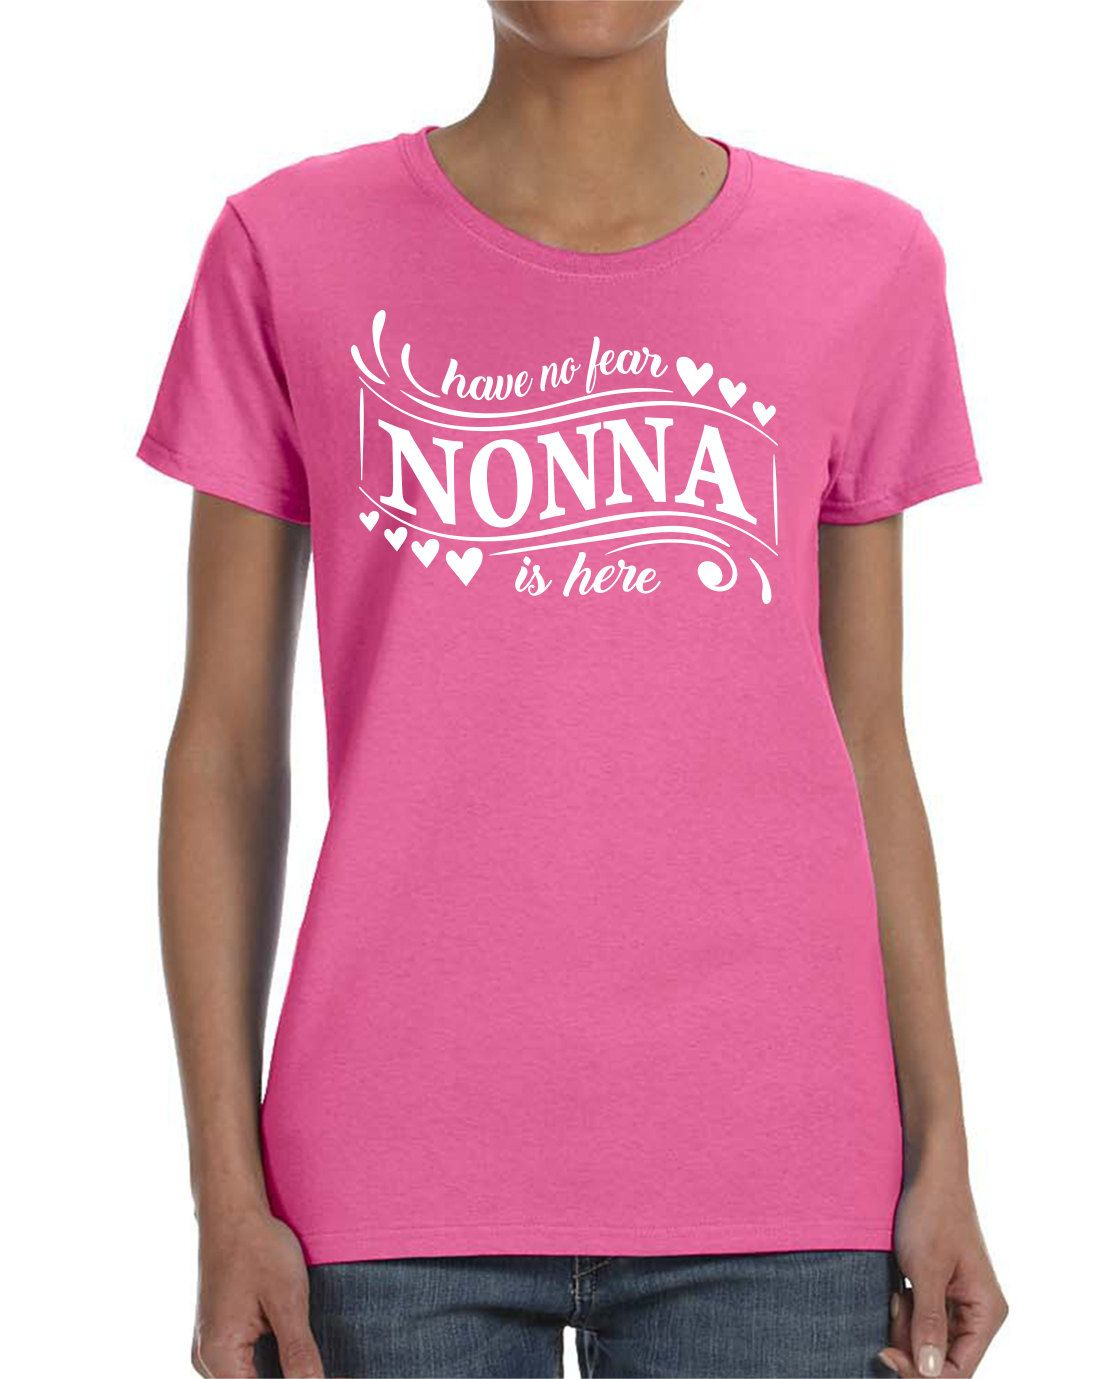 43caa317 Have No Fear Nonna Is Here Women T-shirt Nonna Shirt Gift for Nonna by  WildWindApparel on Etsy